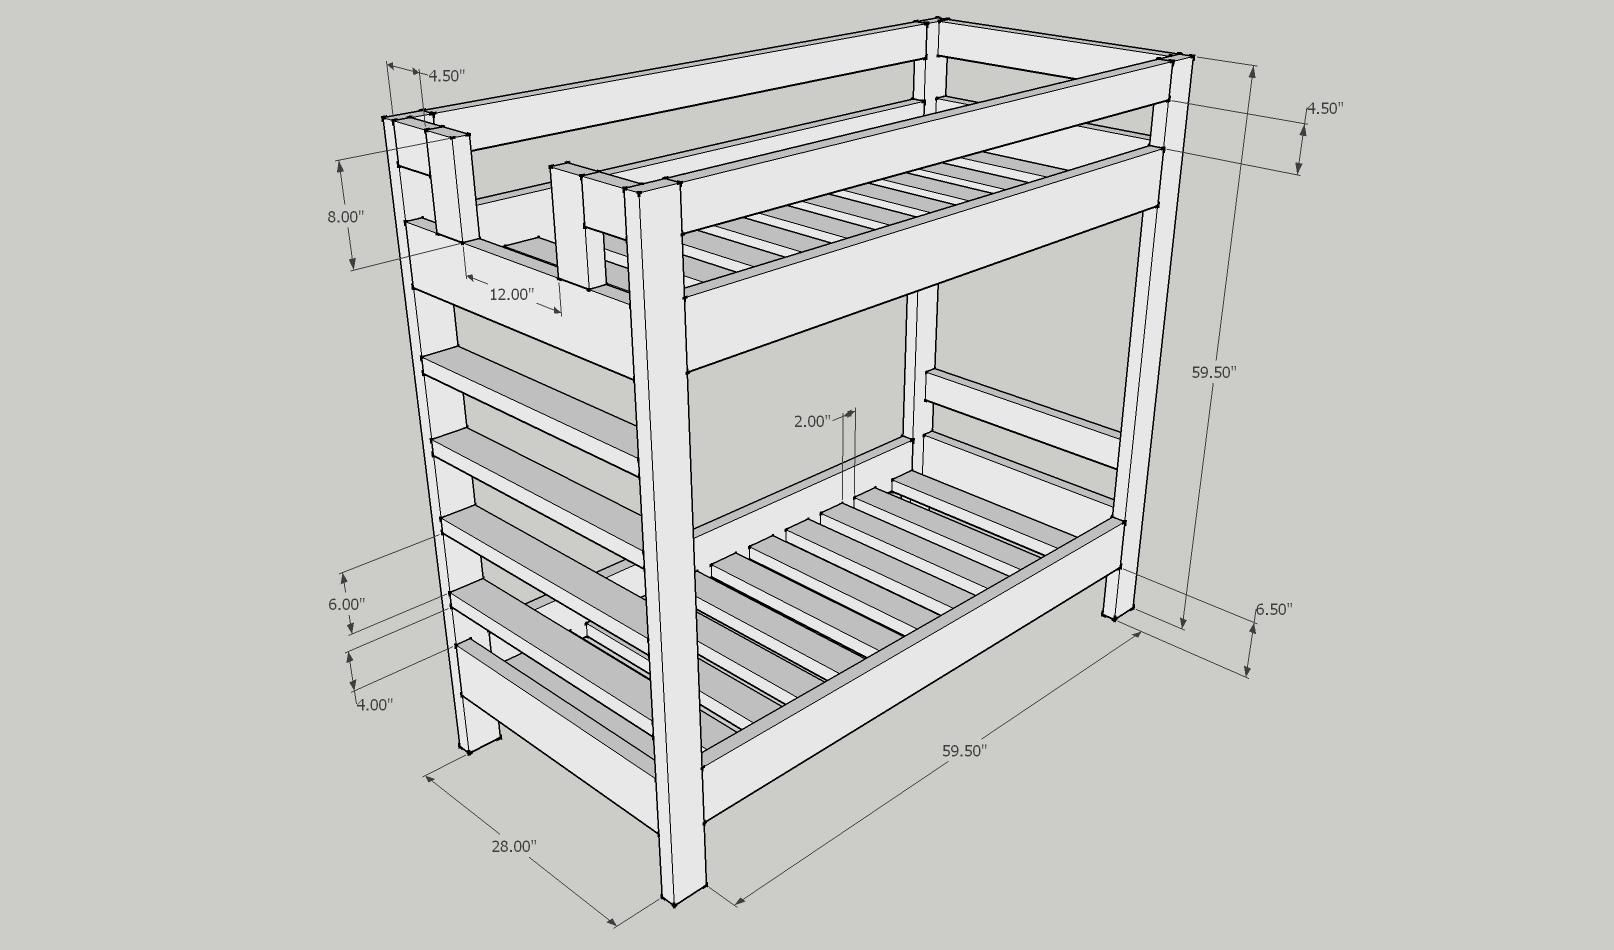 Free Diy Bunk Bed Plans Kreg Jig Bunk Bed Plans Kreg Jig